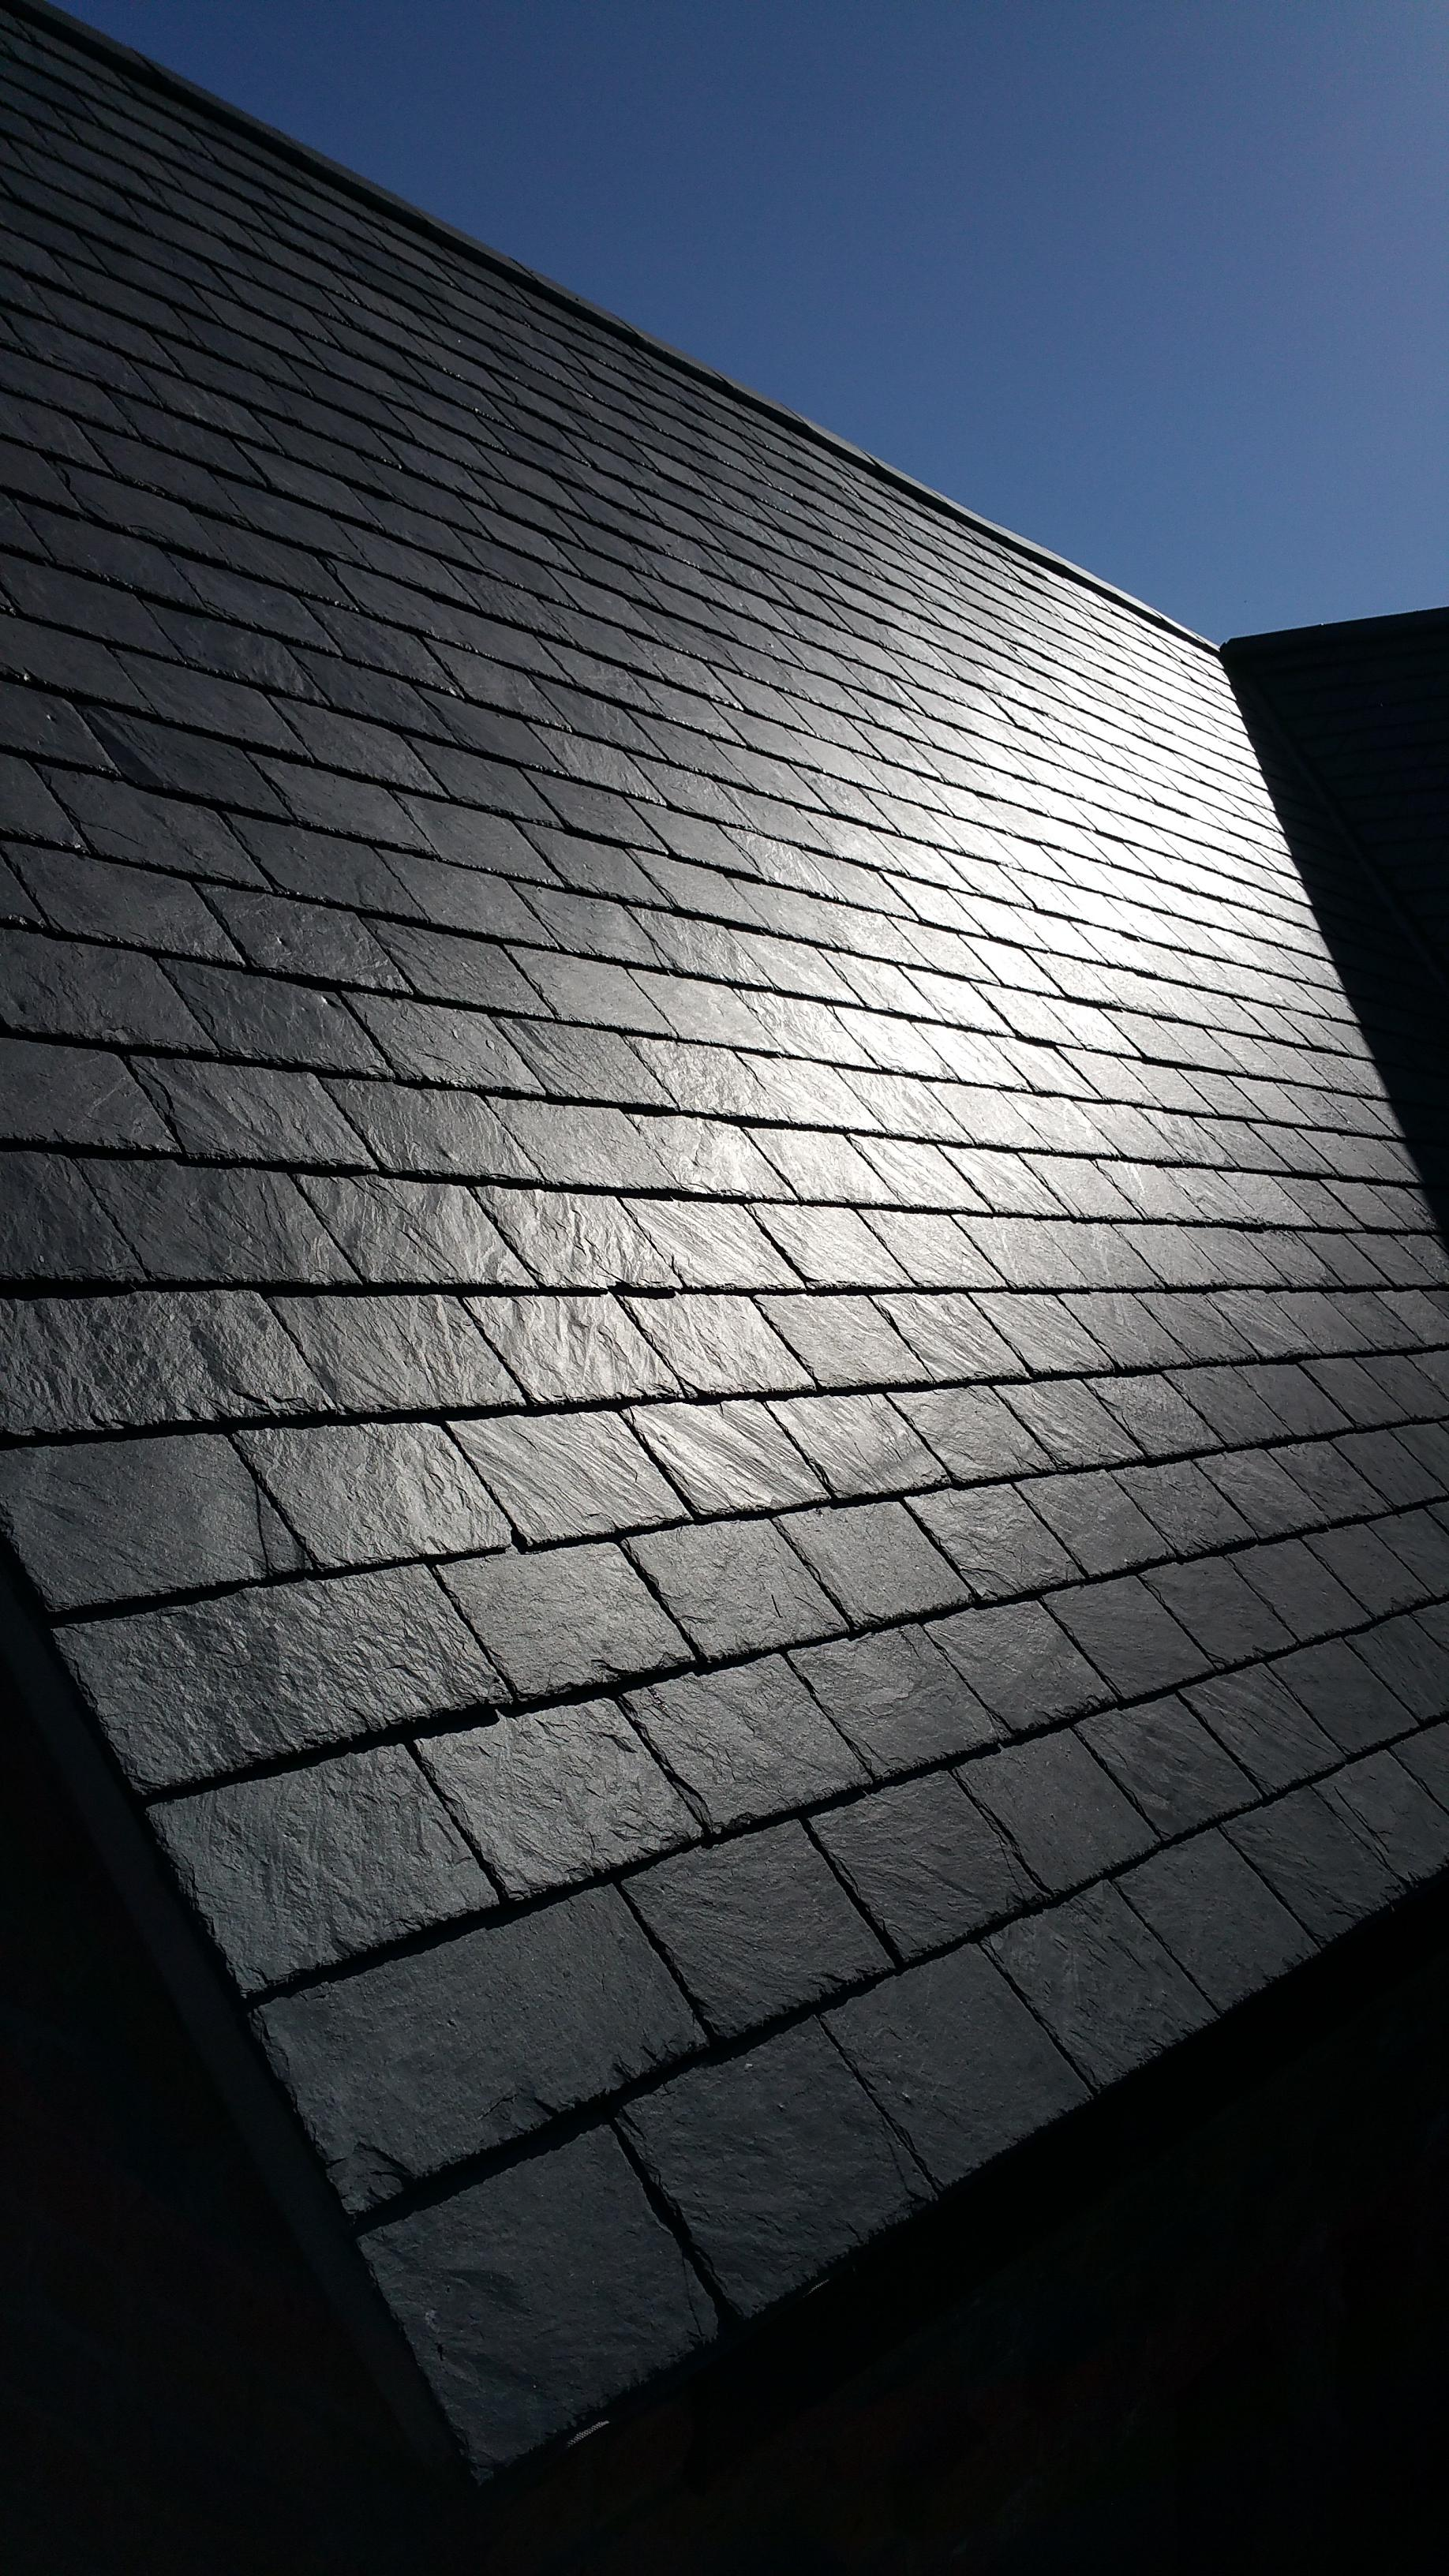 Galex, Iconic Slate Ltd Heritage, Grey slate 40cm x 25cm  7-9mm thick, fitted in Cheshire